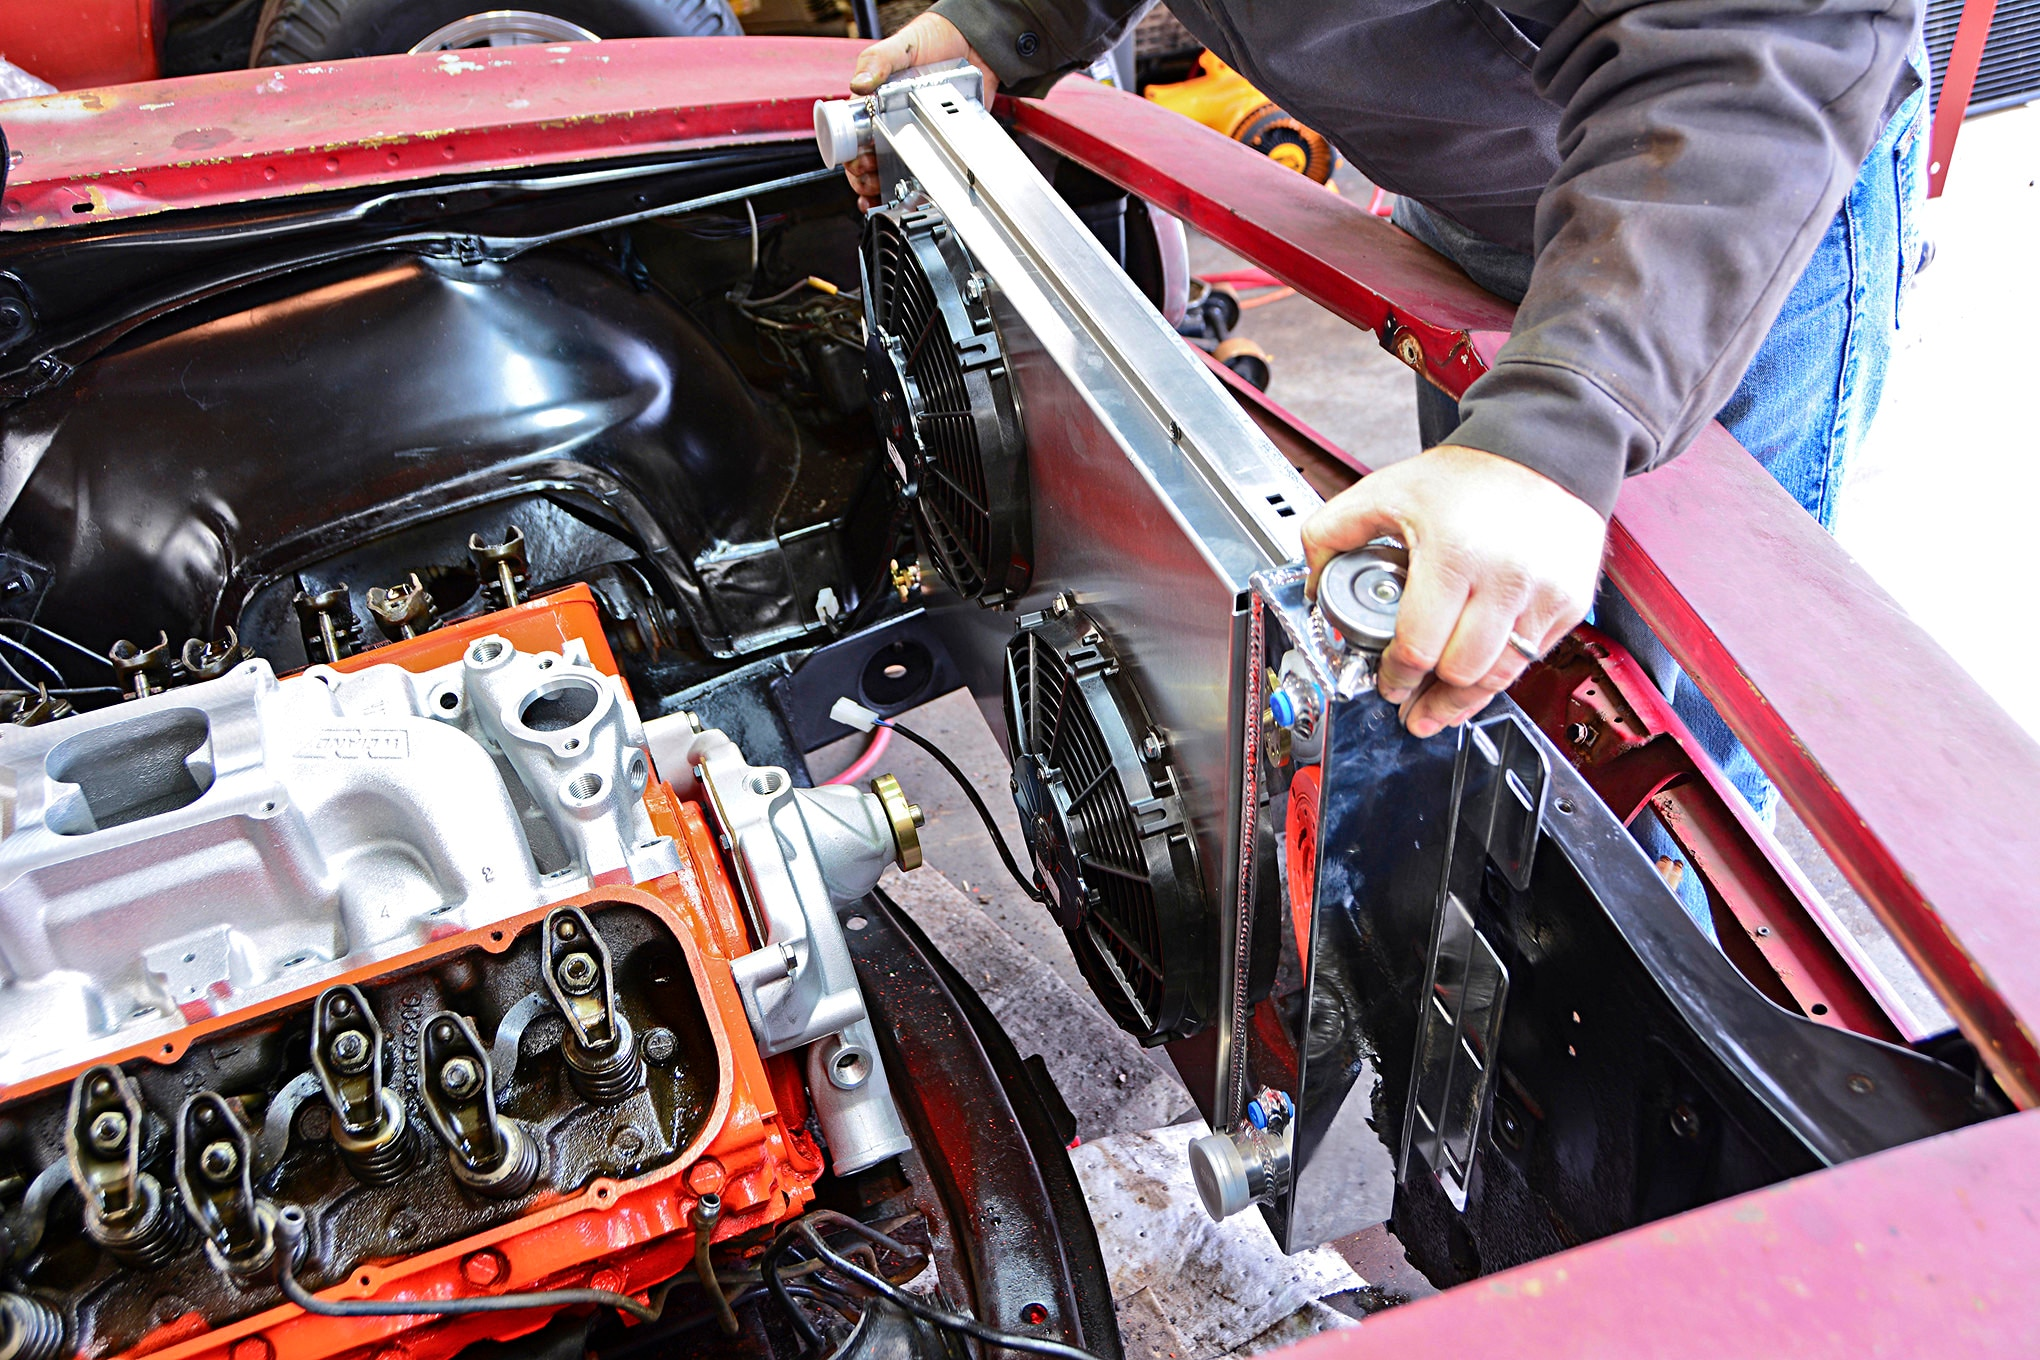 hemi engine swap guide 5 7l and 6 1l hemis for early mopars hot rod network [ 1920:1280 x 1920 Pixel ]